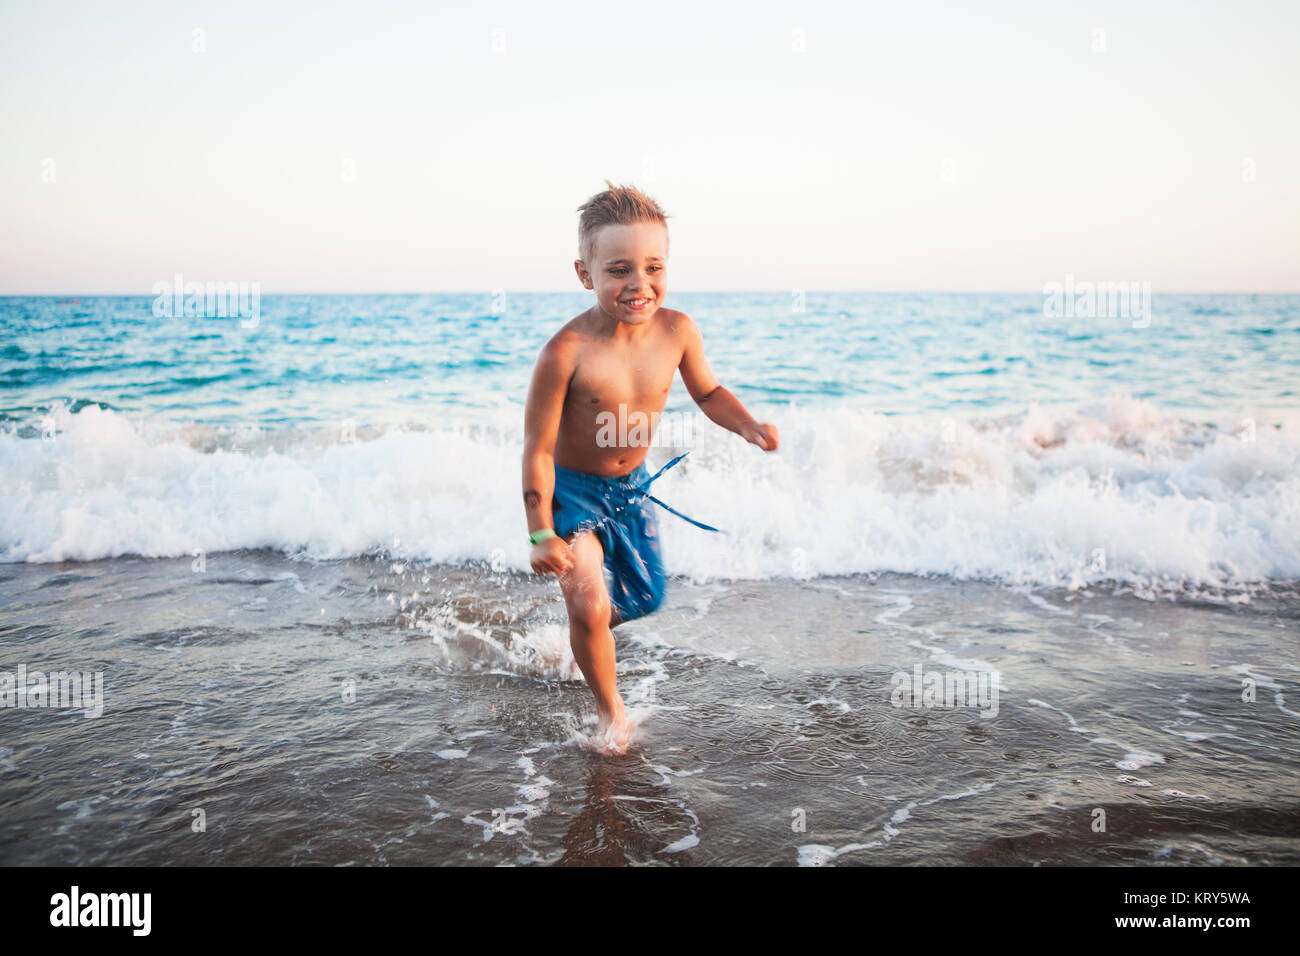 A young boy playing in the surf at a beach in Turkey - Stock Image